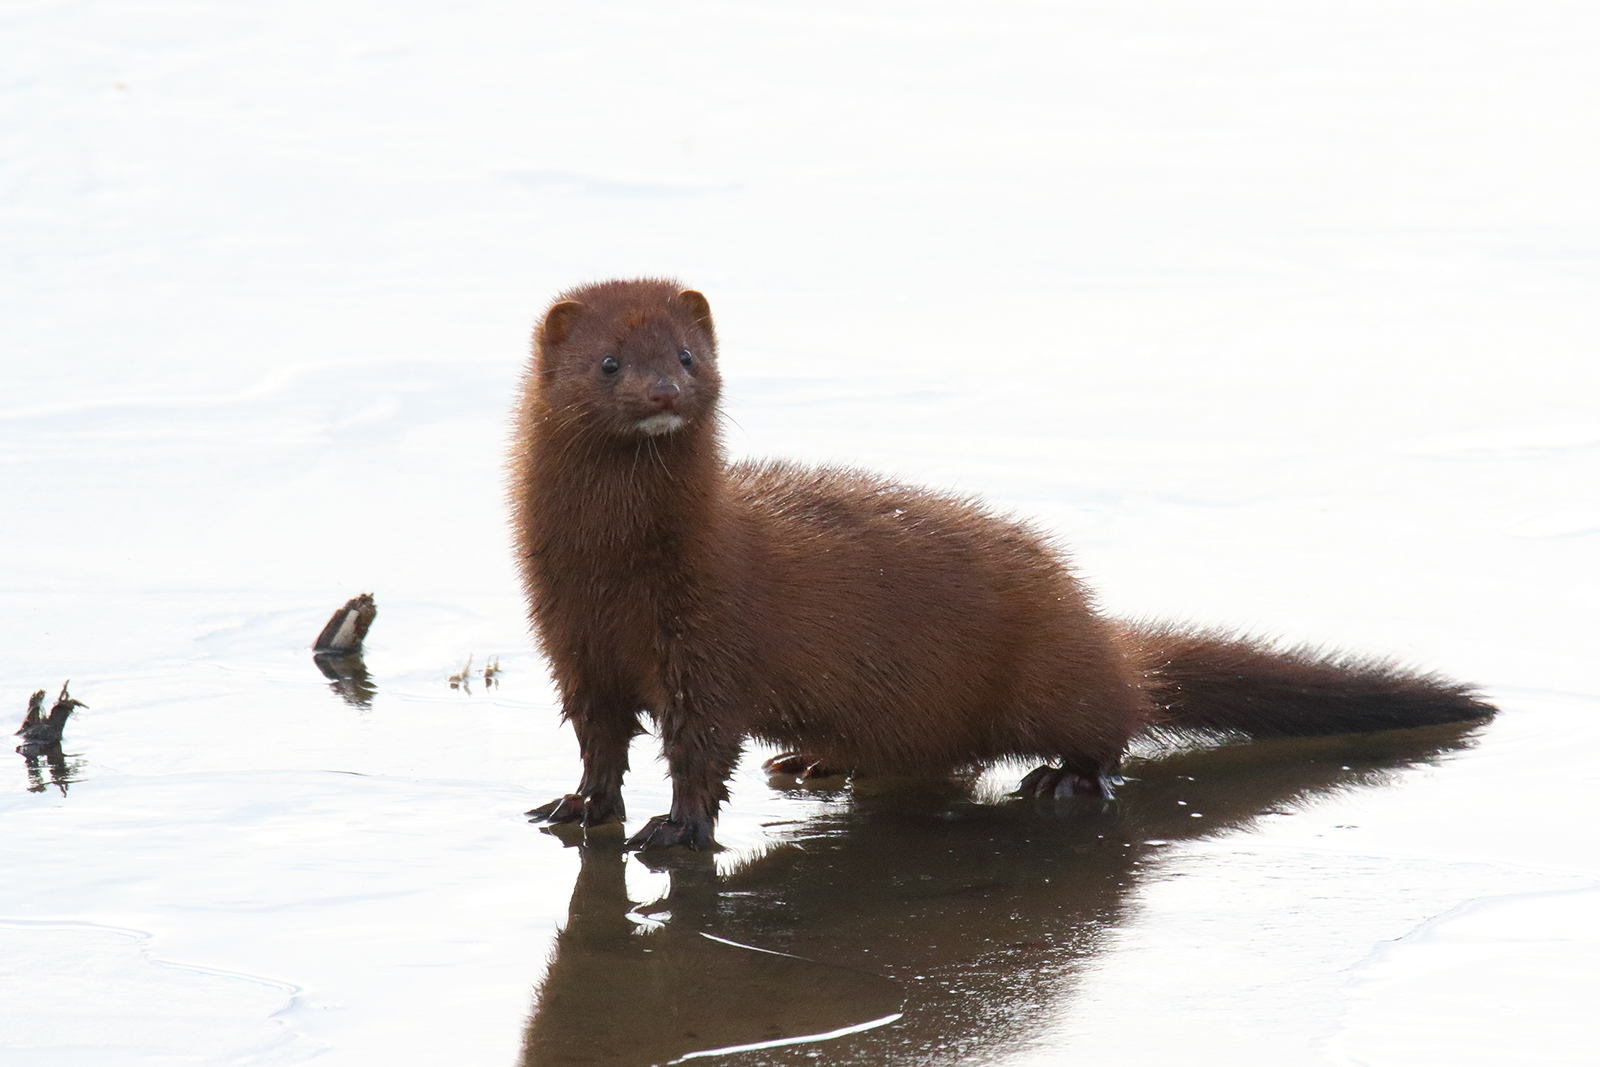 This American mink was spotted on the north end of the A.E. Sea. nature, wildlife, animal, mammal, mink Photo: Gordon Garcia